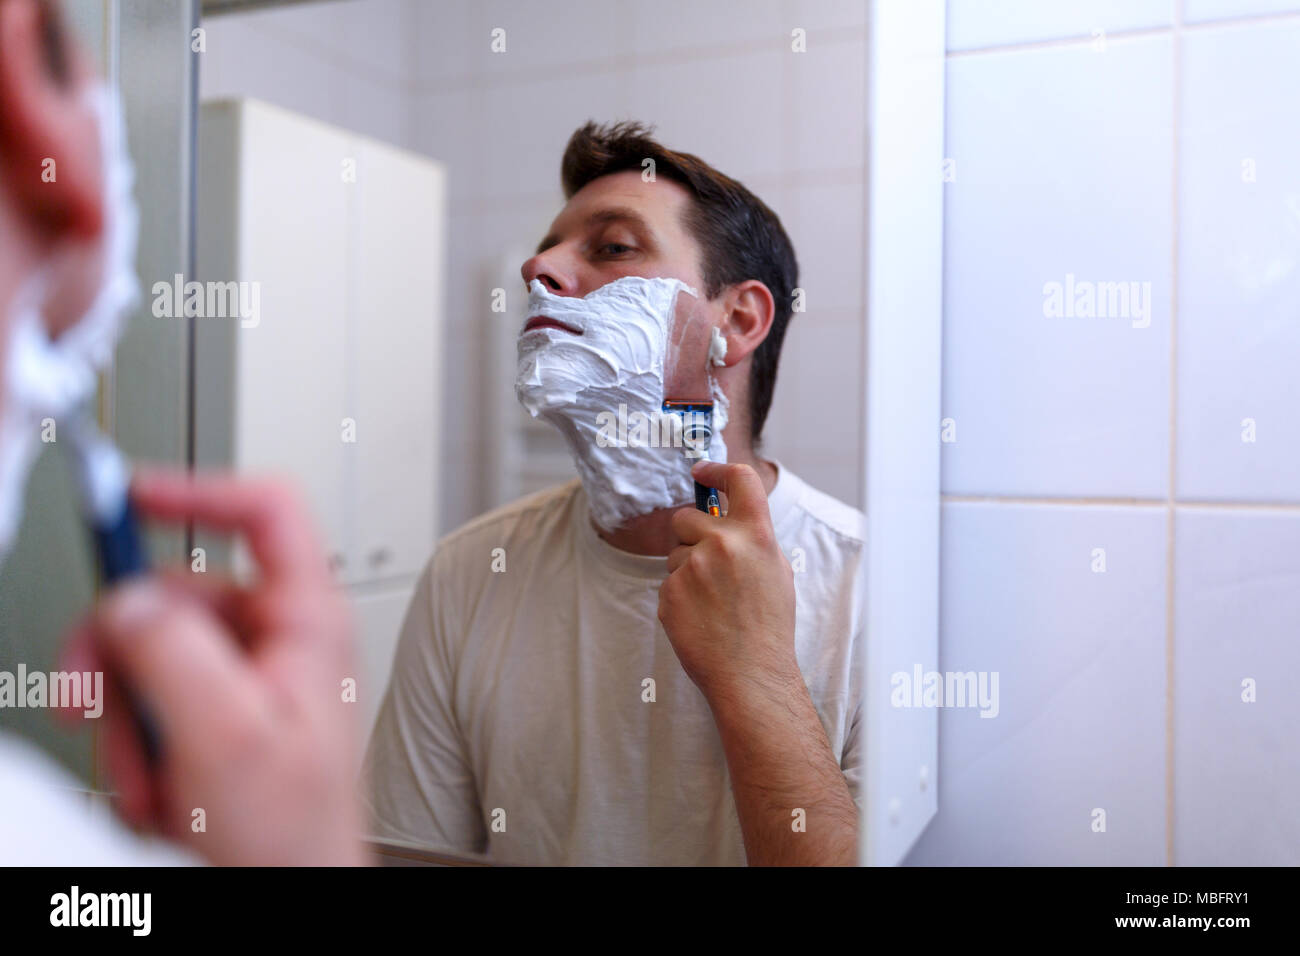 young man shaving with razor and shaving cream in bathroom - Stock Image